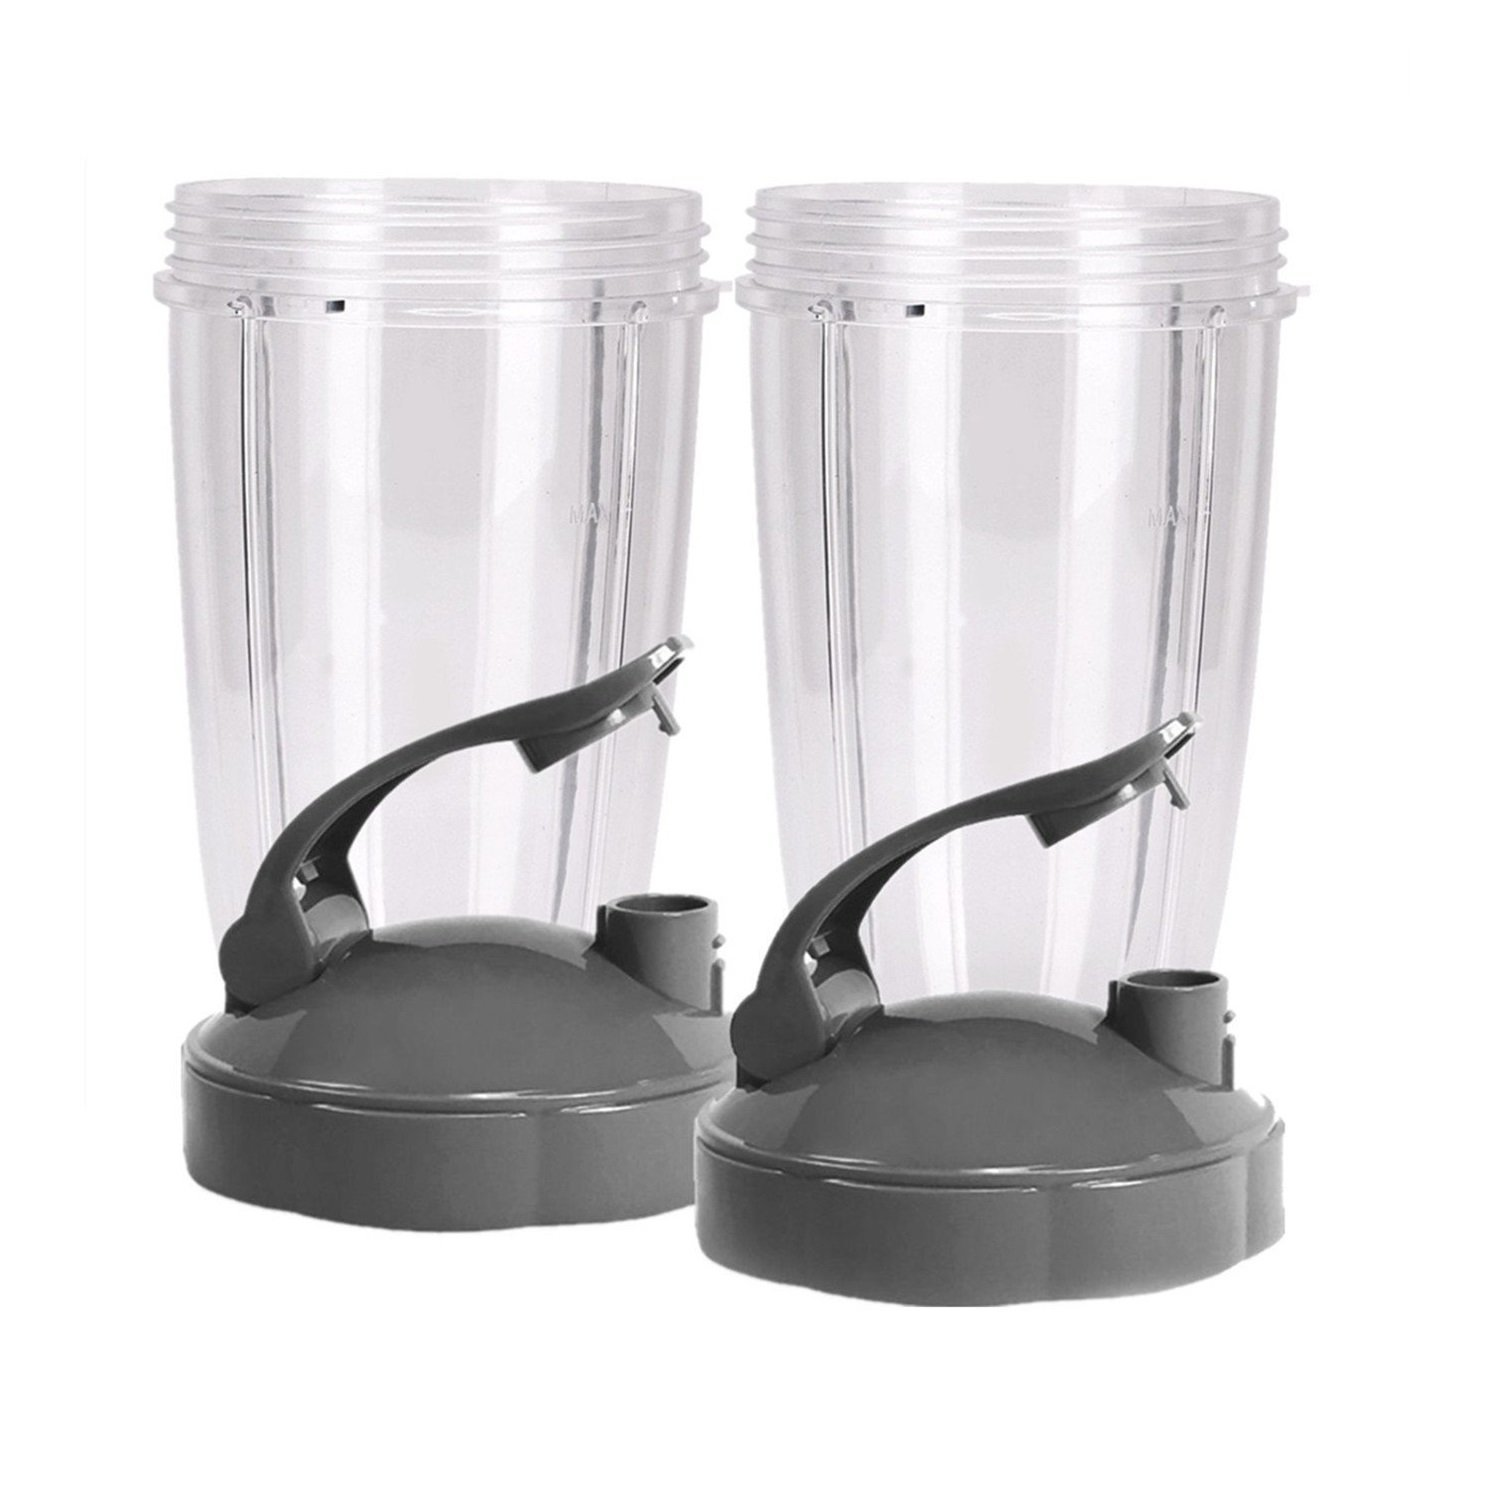 NUTRiBULLET 24-Ounce Cups with Flip Top To-Go Lid by NutriGear (Pack of 2) | NutriBullet Replacement Parts & Accessories | Fits NutriBullet 600w and Pro 900w Blender